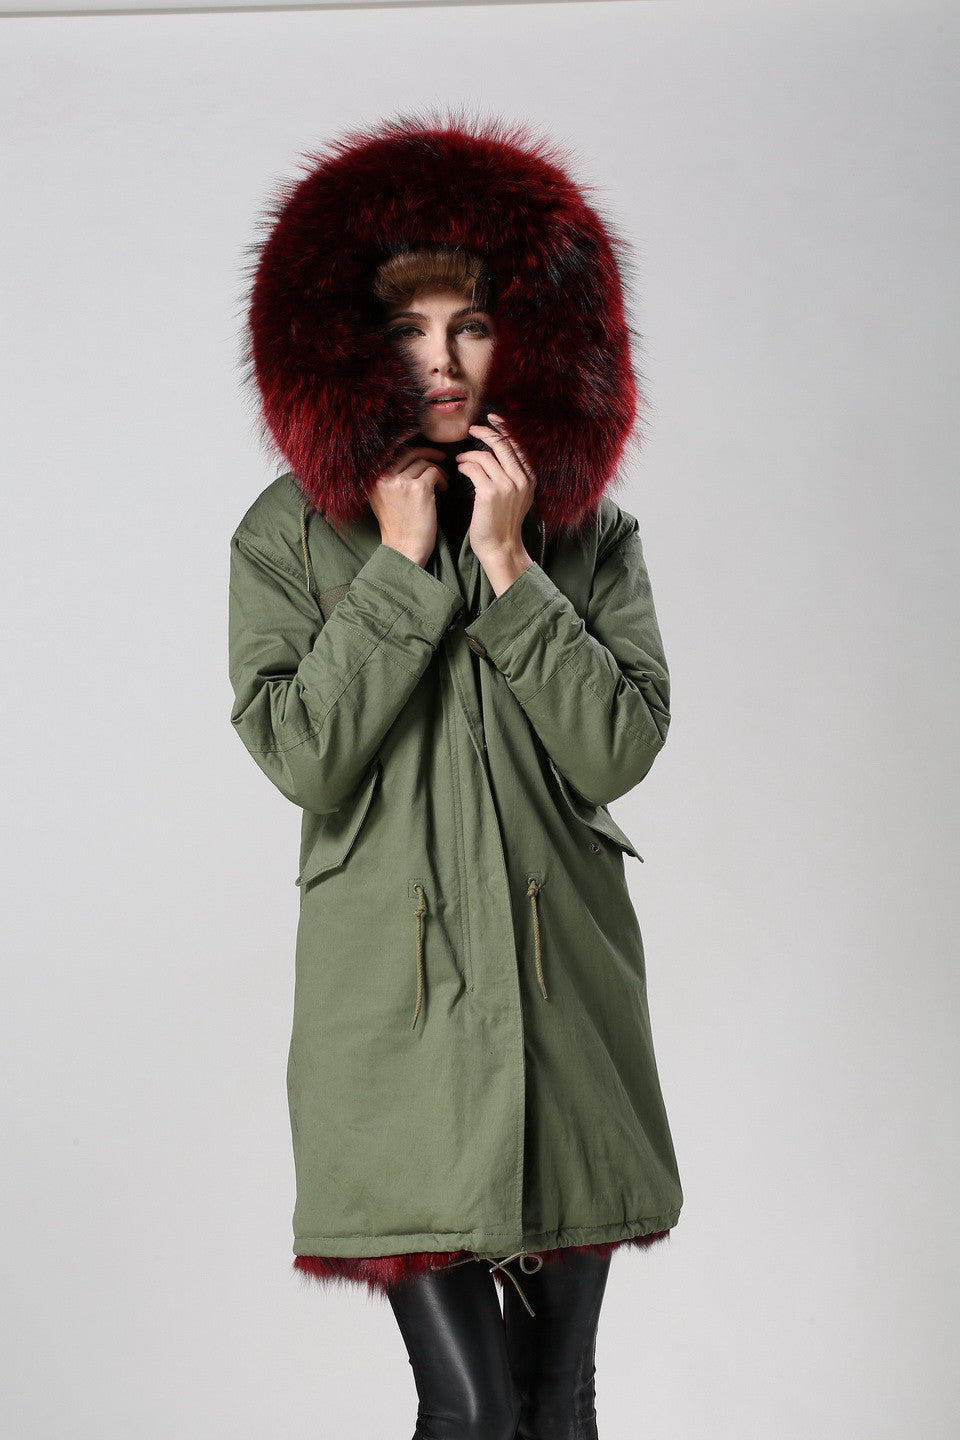 Green Parka With Red Fur Hood